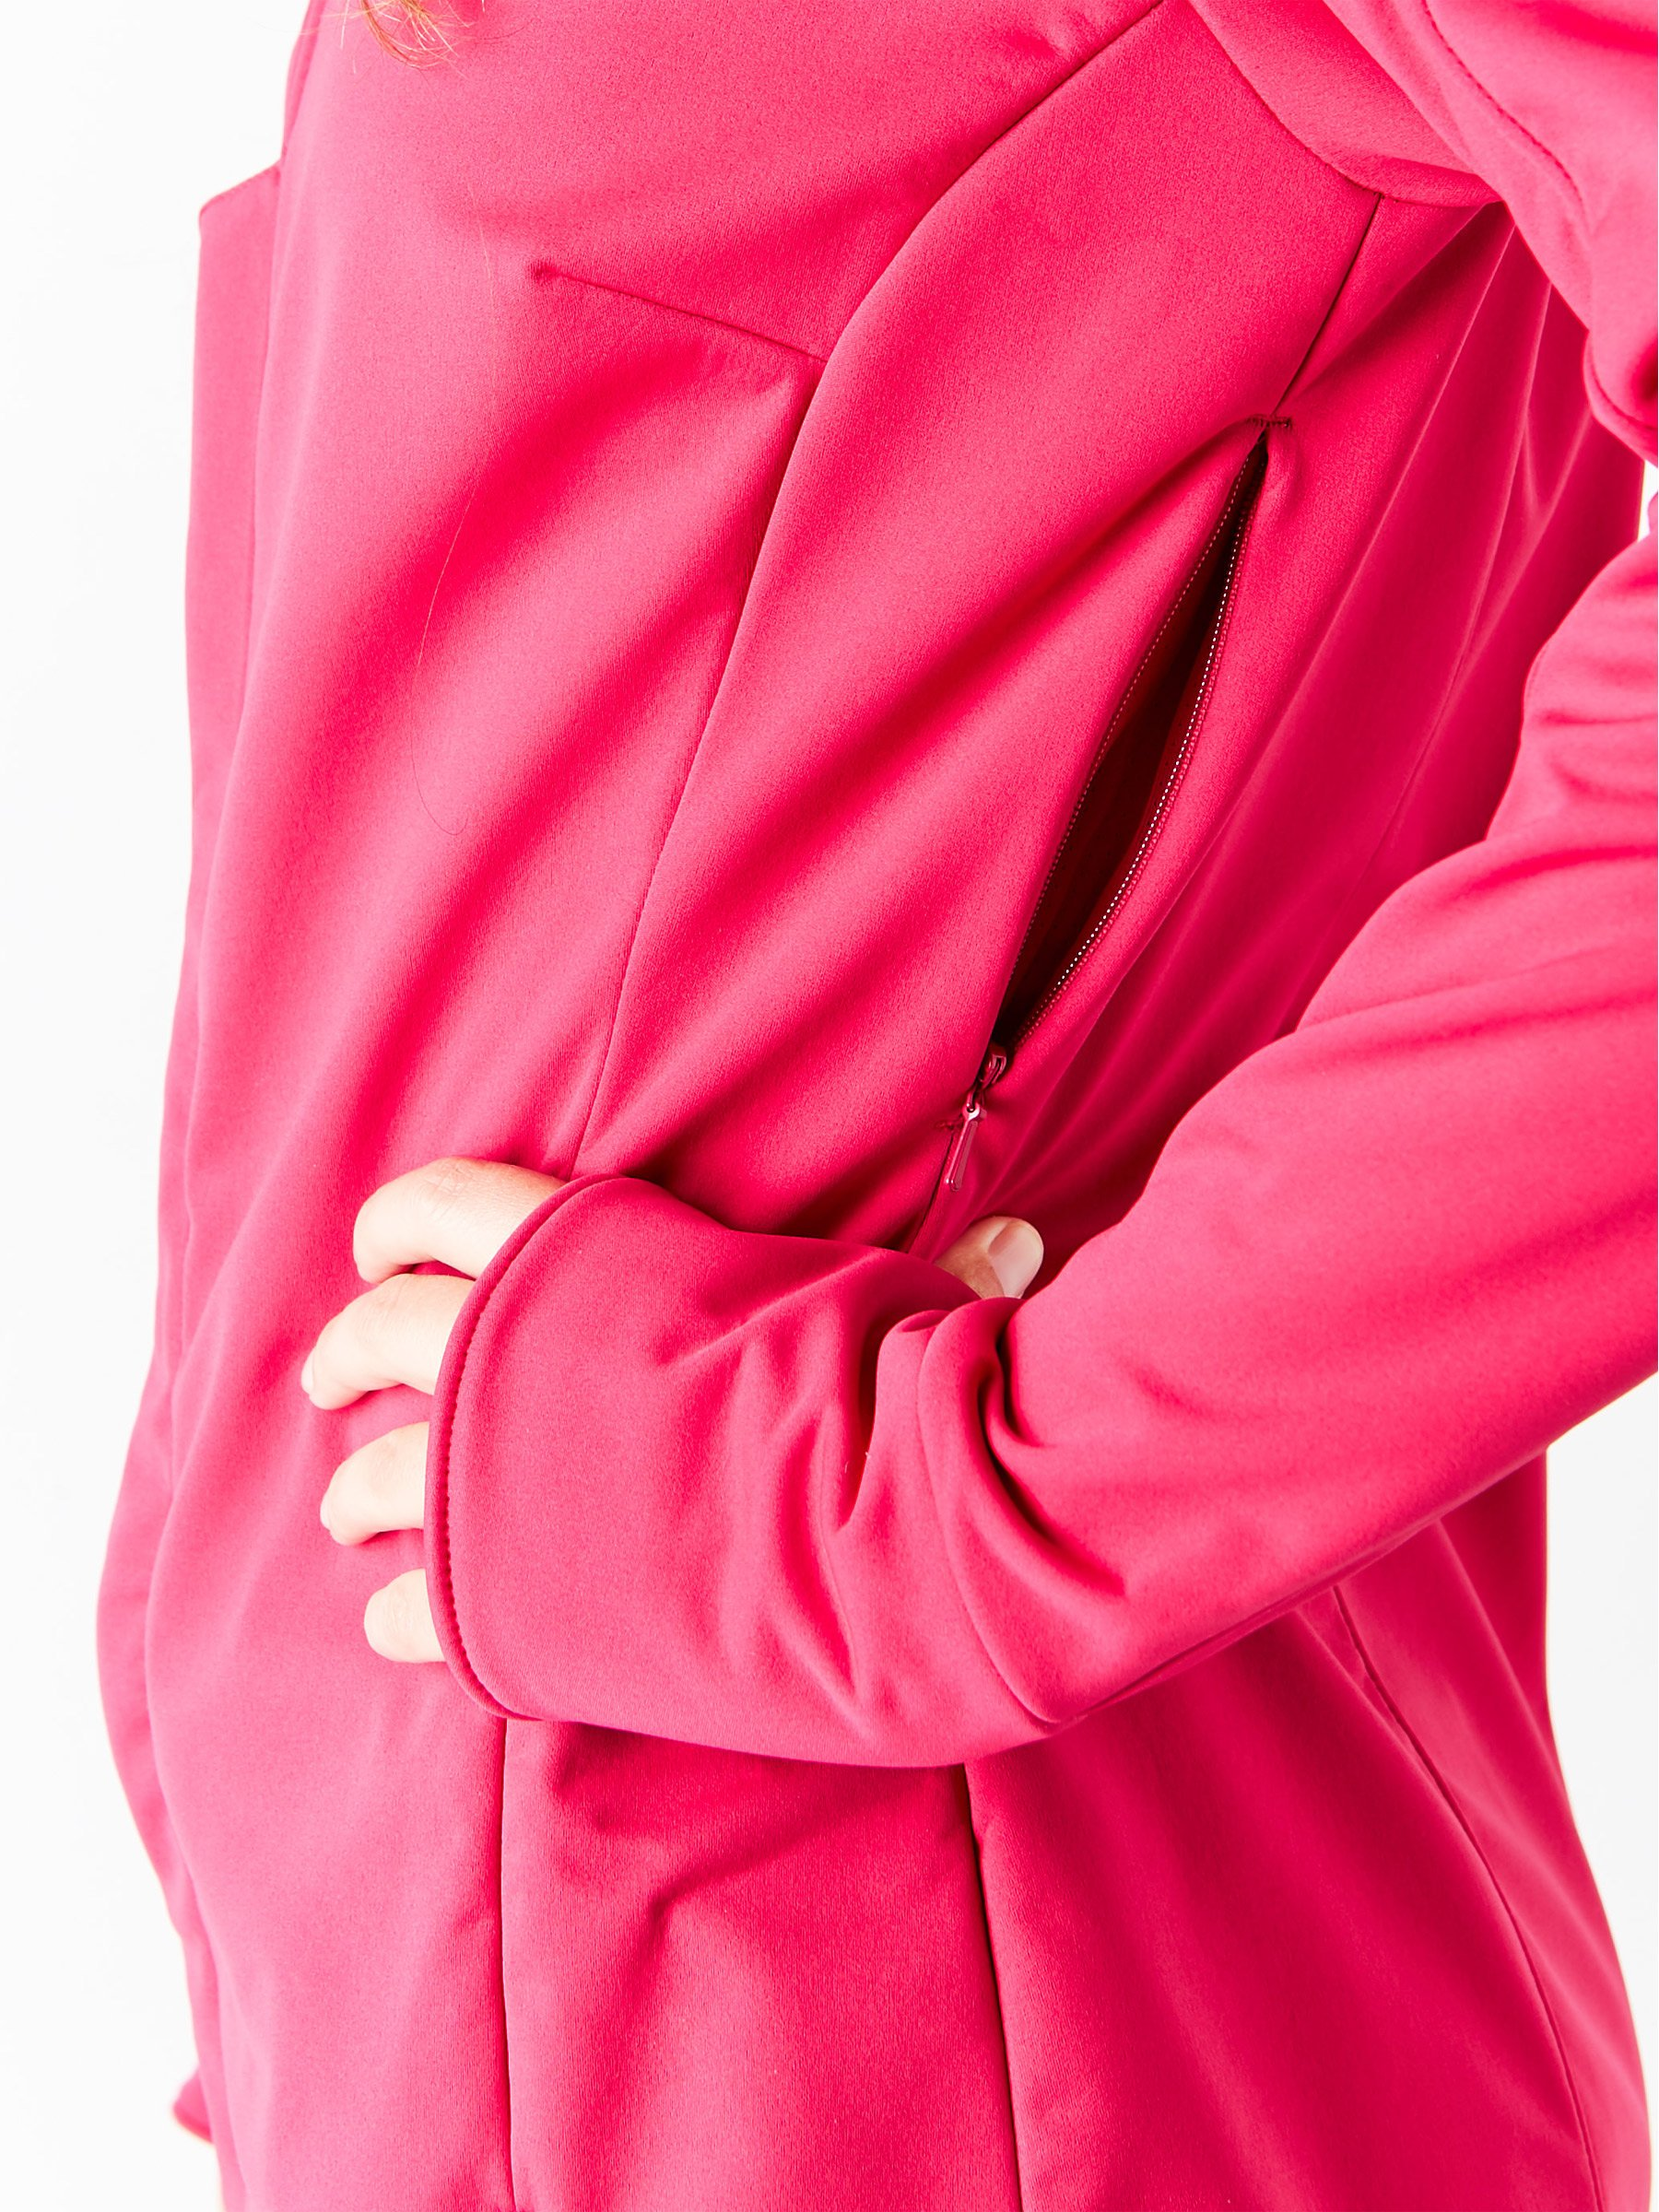 ASICS Womens Softshell Jacket, Performance Black, Small by ASICS (Image #6)